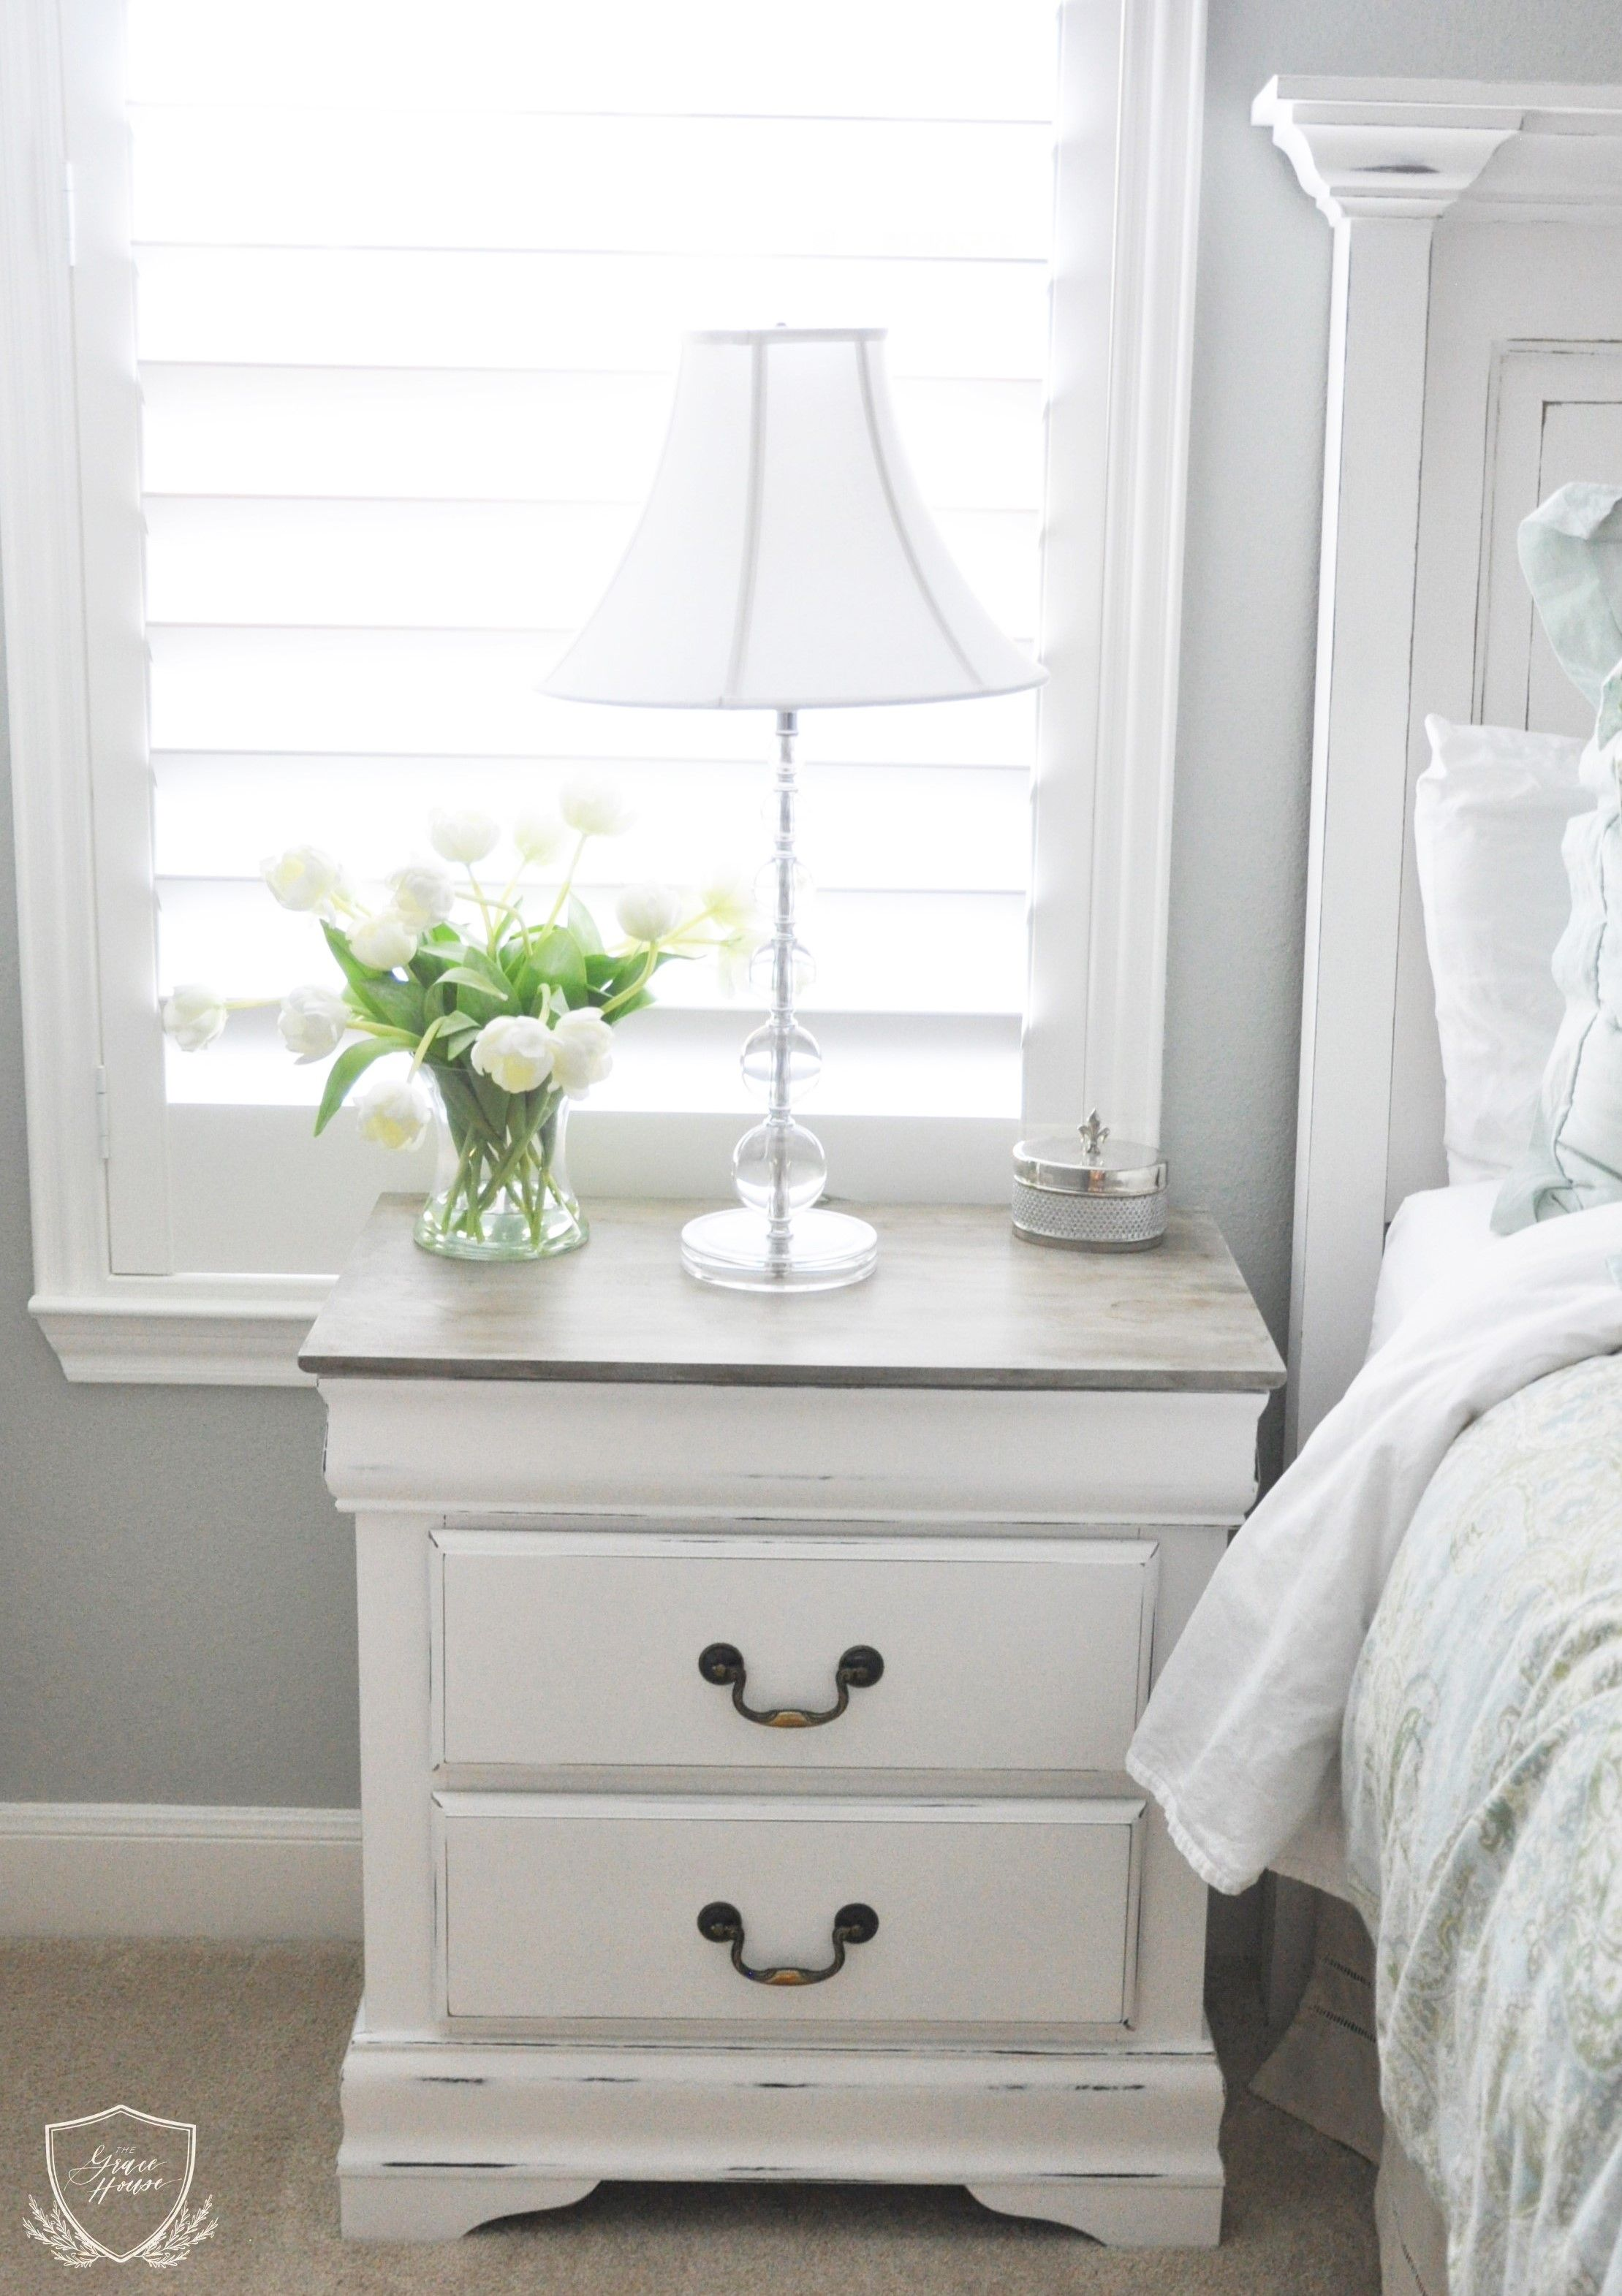 Nightstand chalk paint tutorial chalk paint tutorial How to renovate old furniture